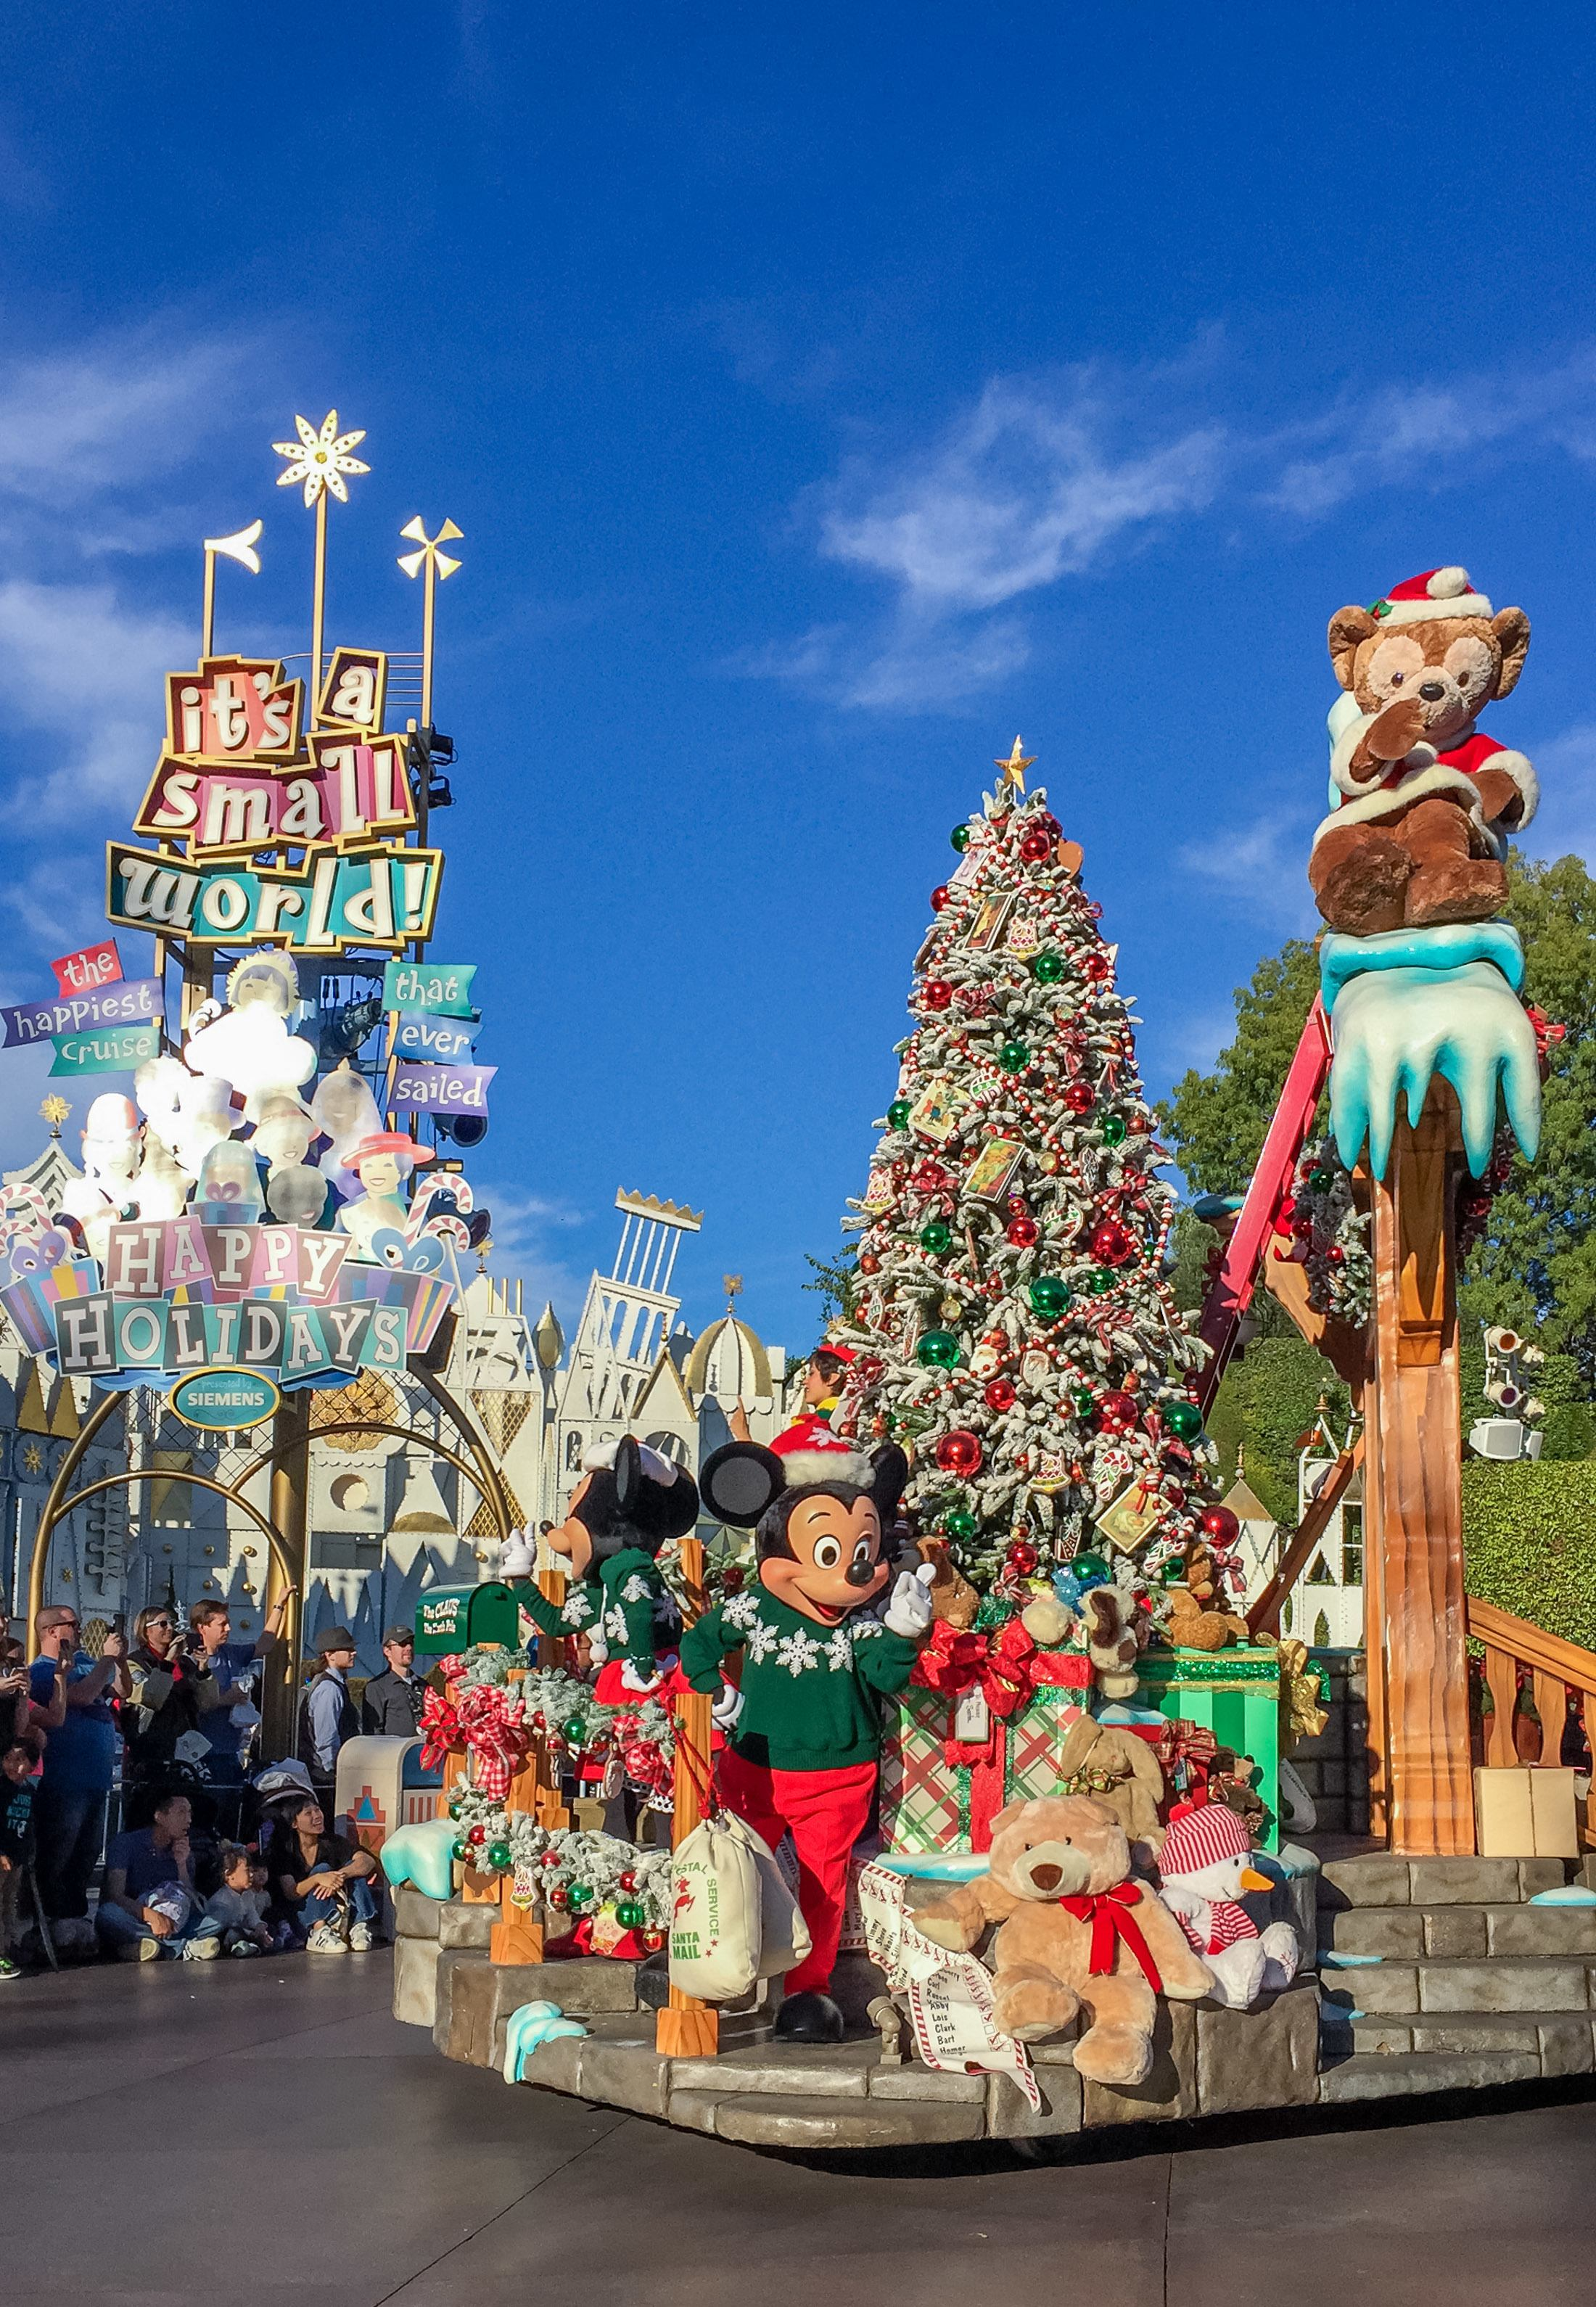 Watch How to Plan a Disney Vacation video